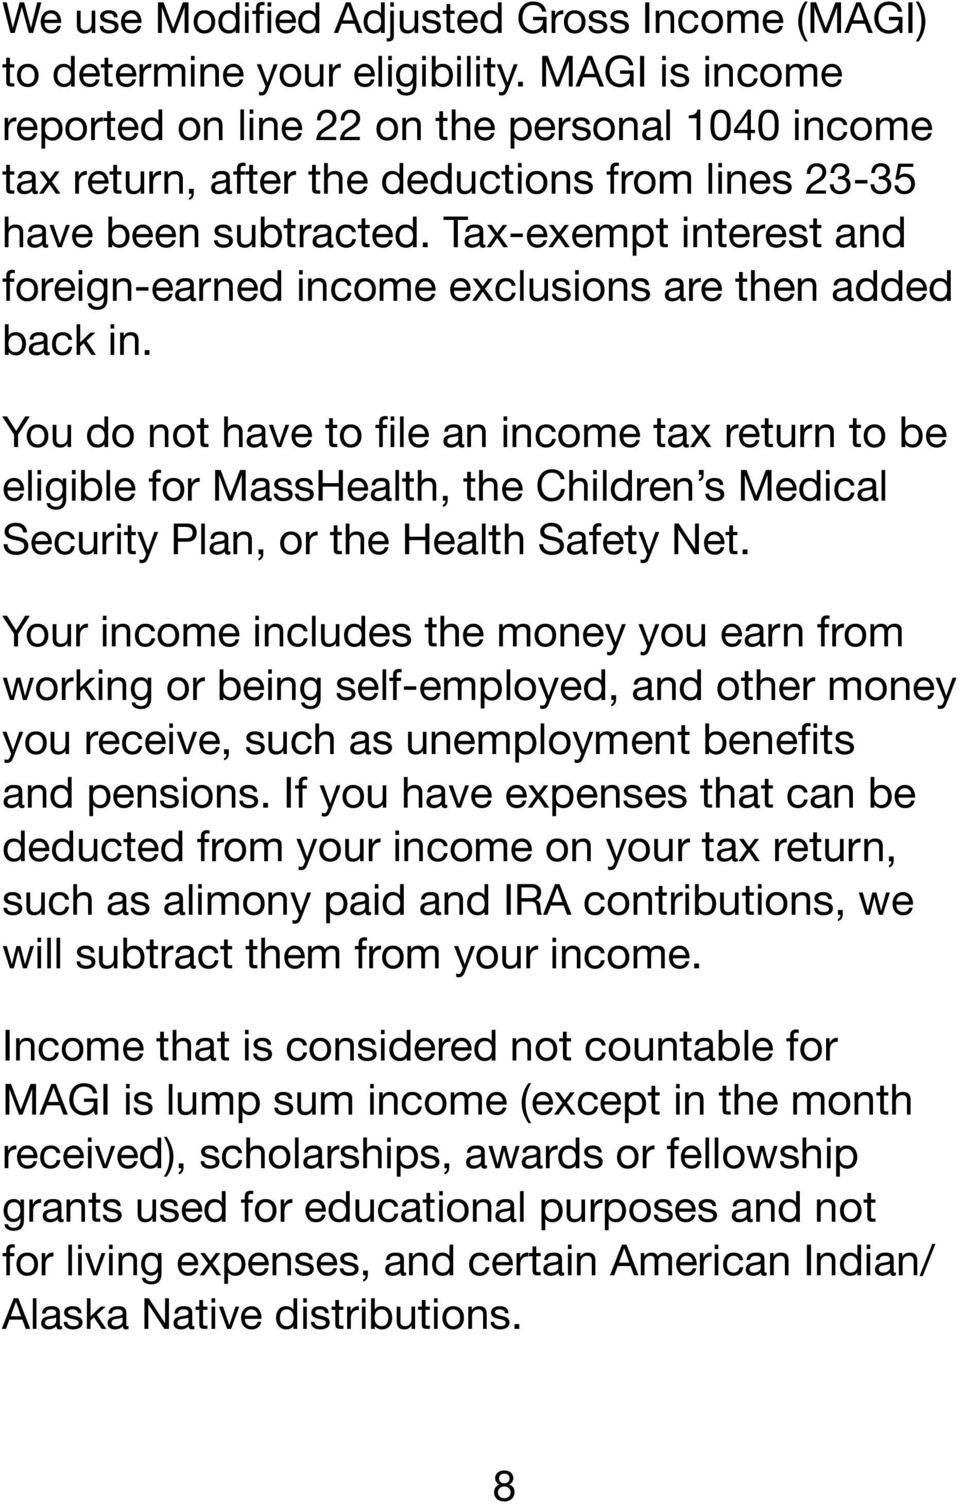 Tax-exempt interest and foreign-earned income exclusions are then added back in.